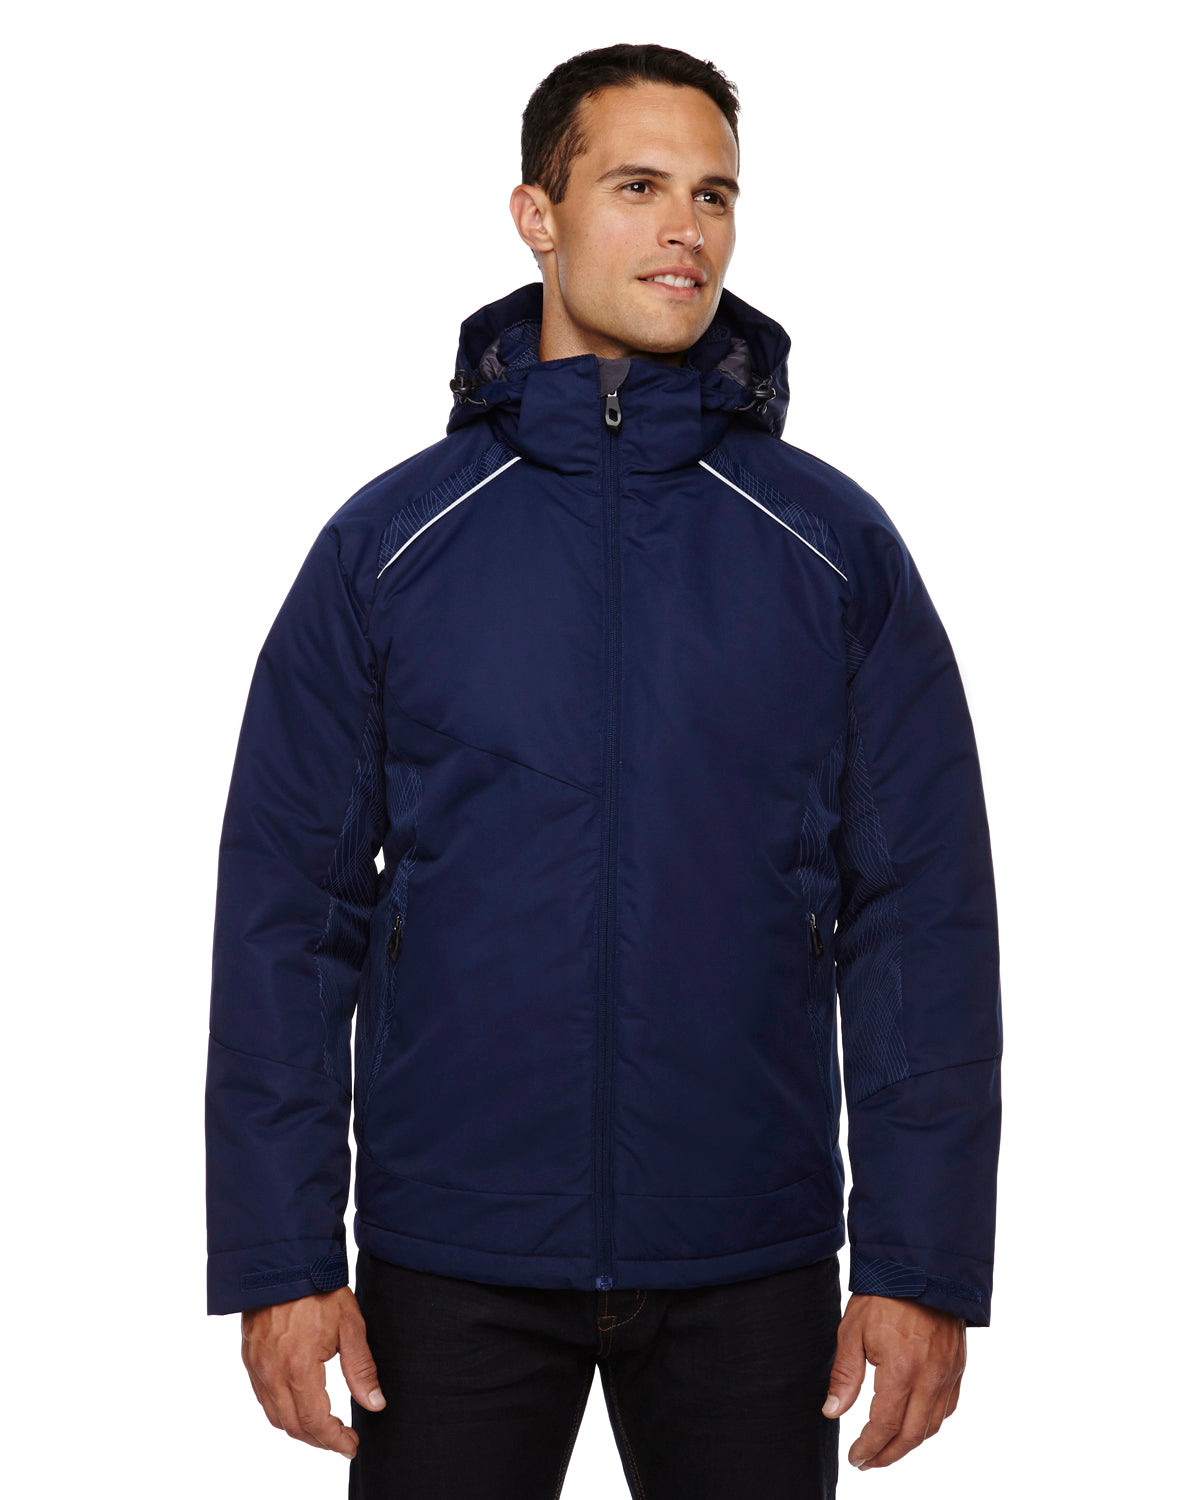 NORTH END MEN'S LINEAR INSULATED JACKET